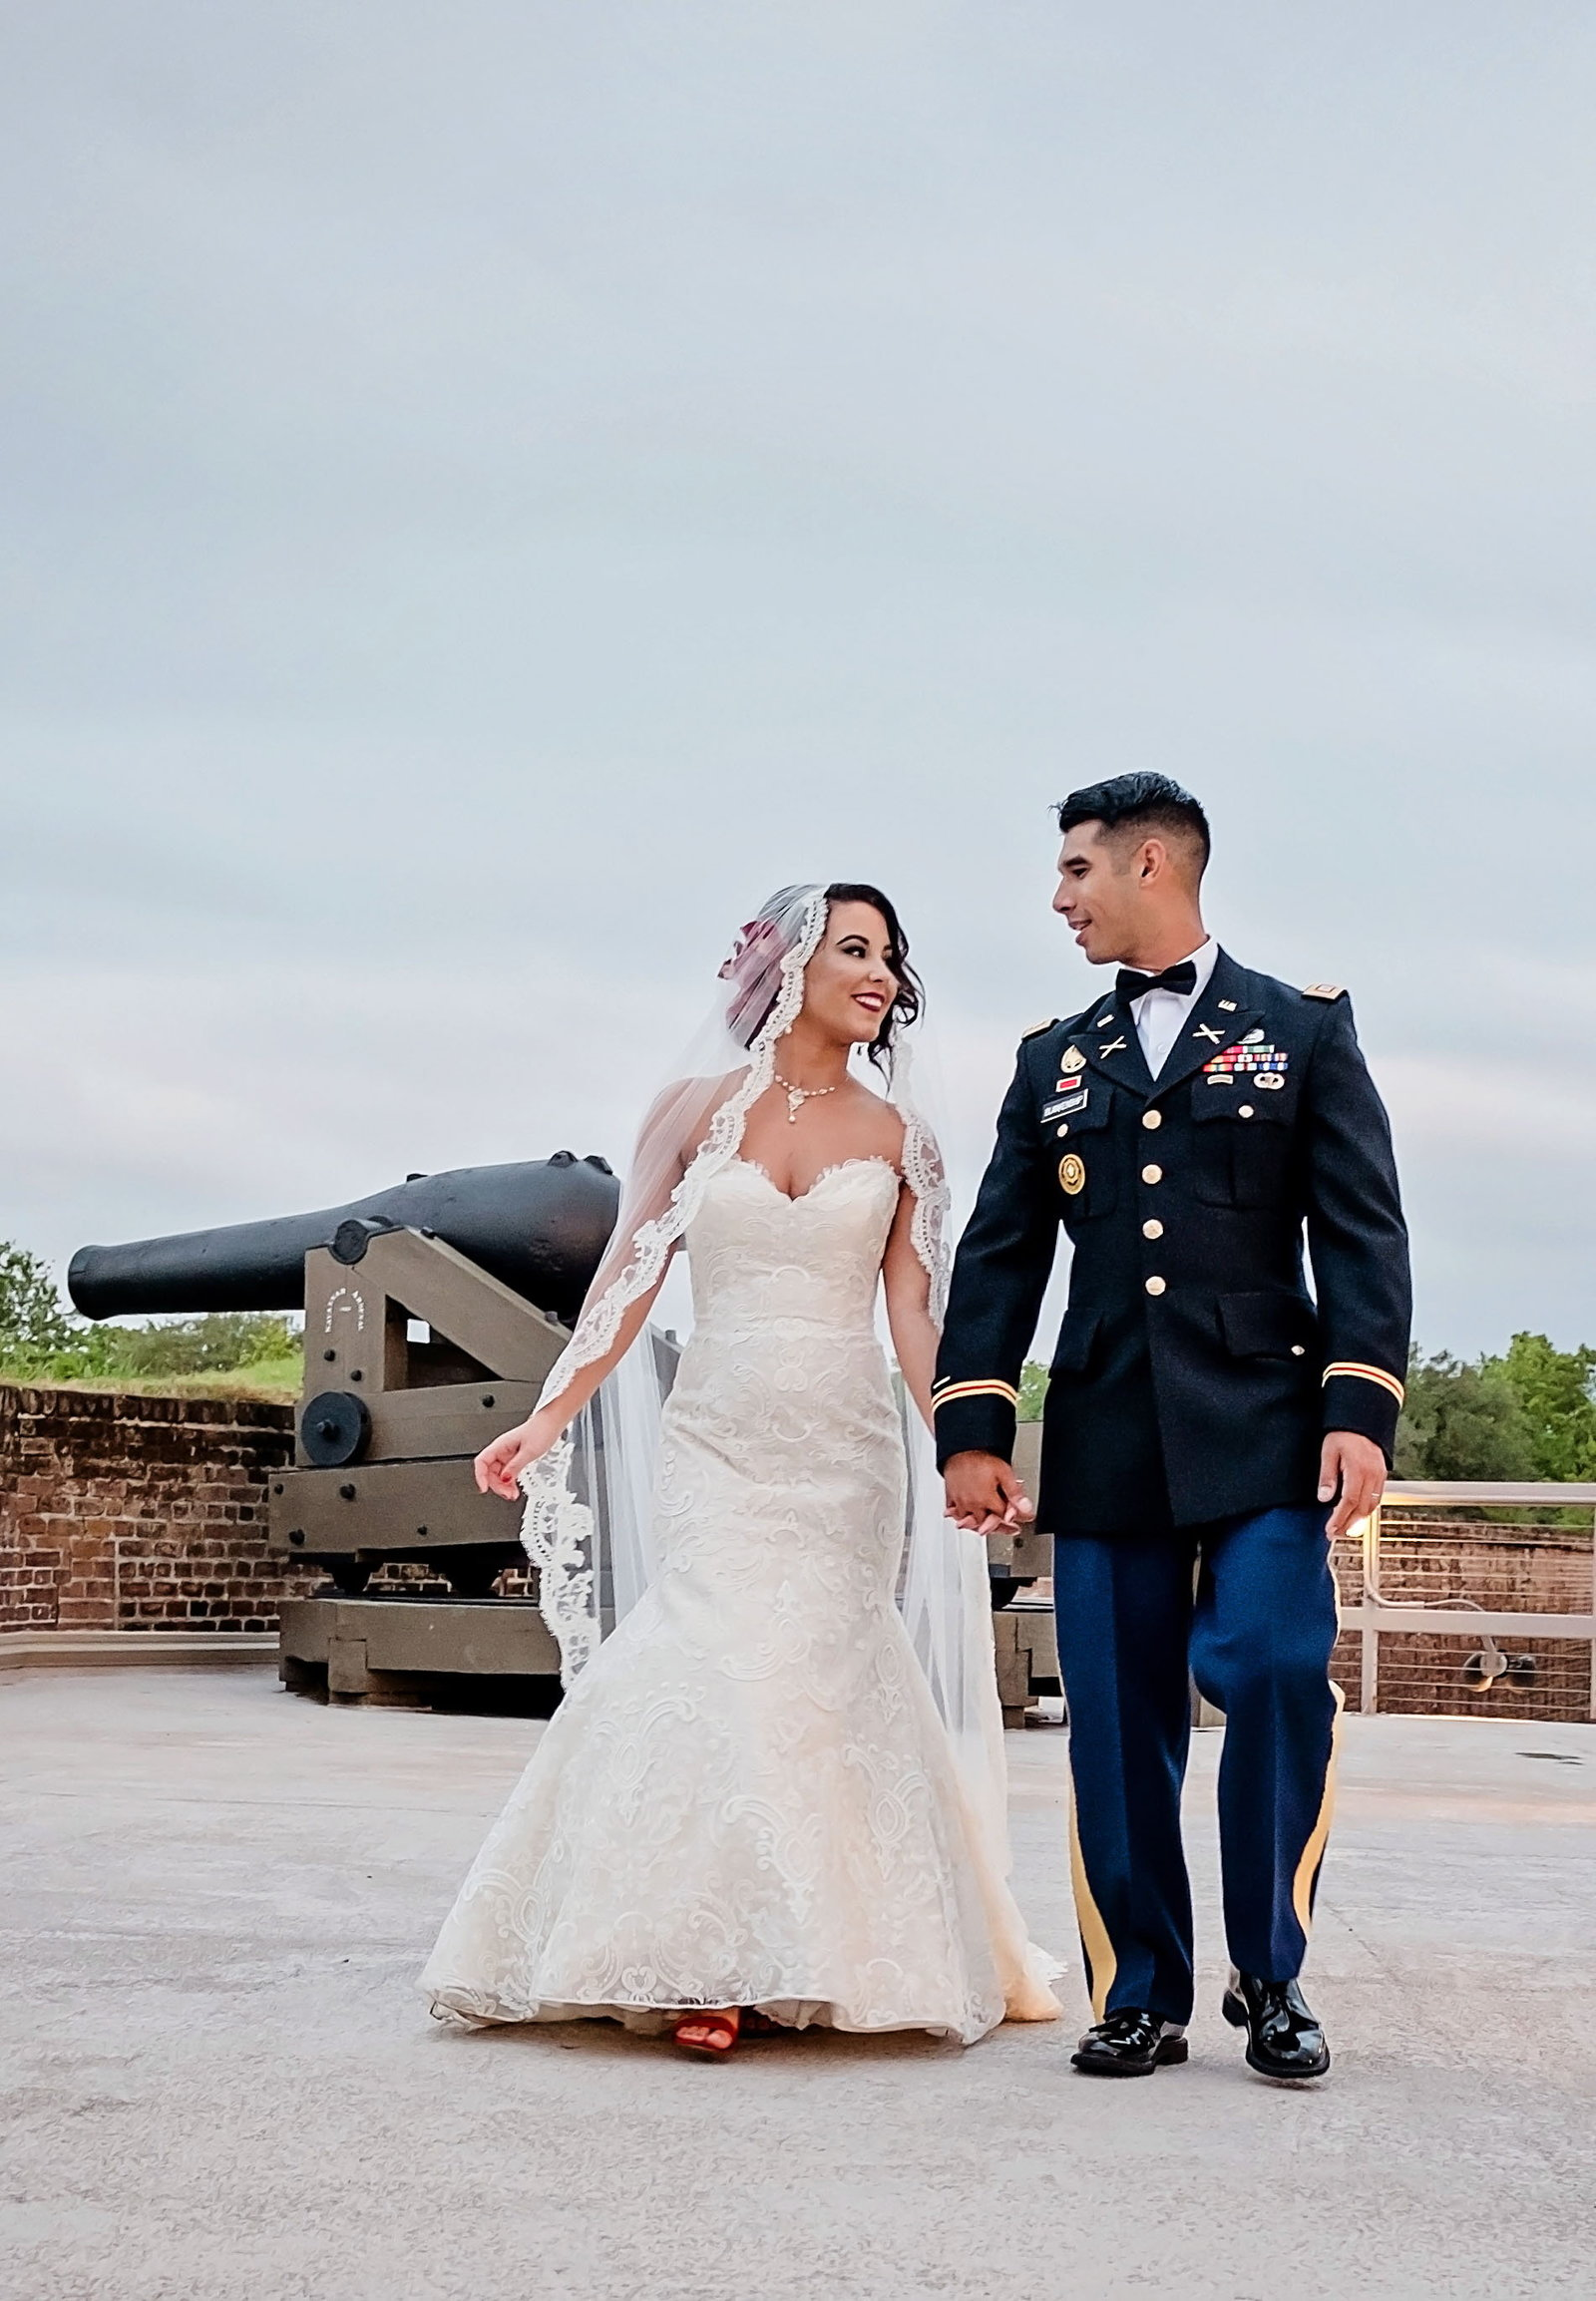 Old Fort Jackson Wedding, Bobbi Brinkman Photography